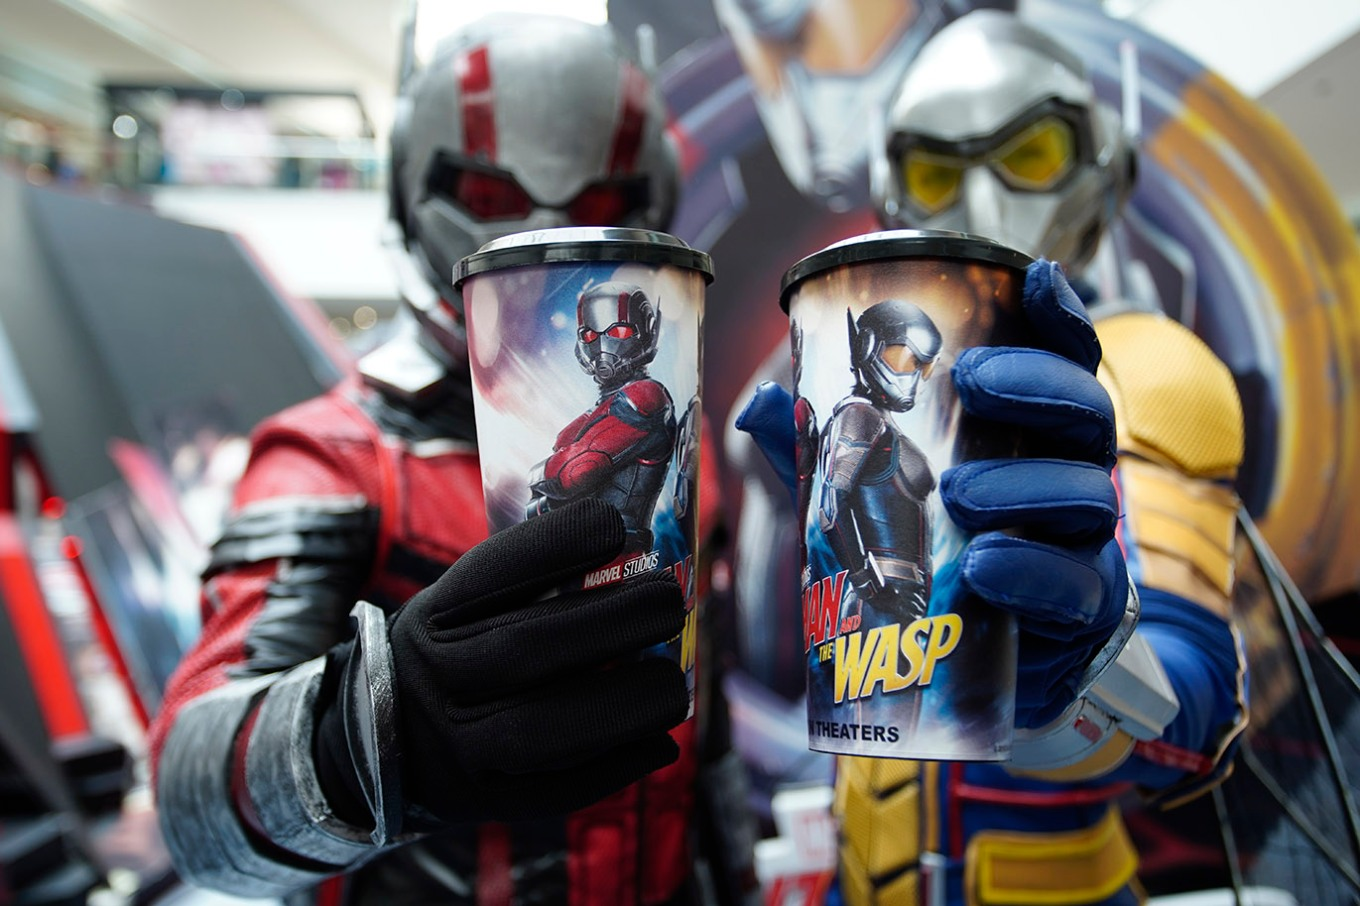 Ant-Man and The Wasp cosplayers with the exclusive Snacktime tumblers